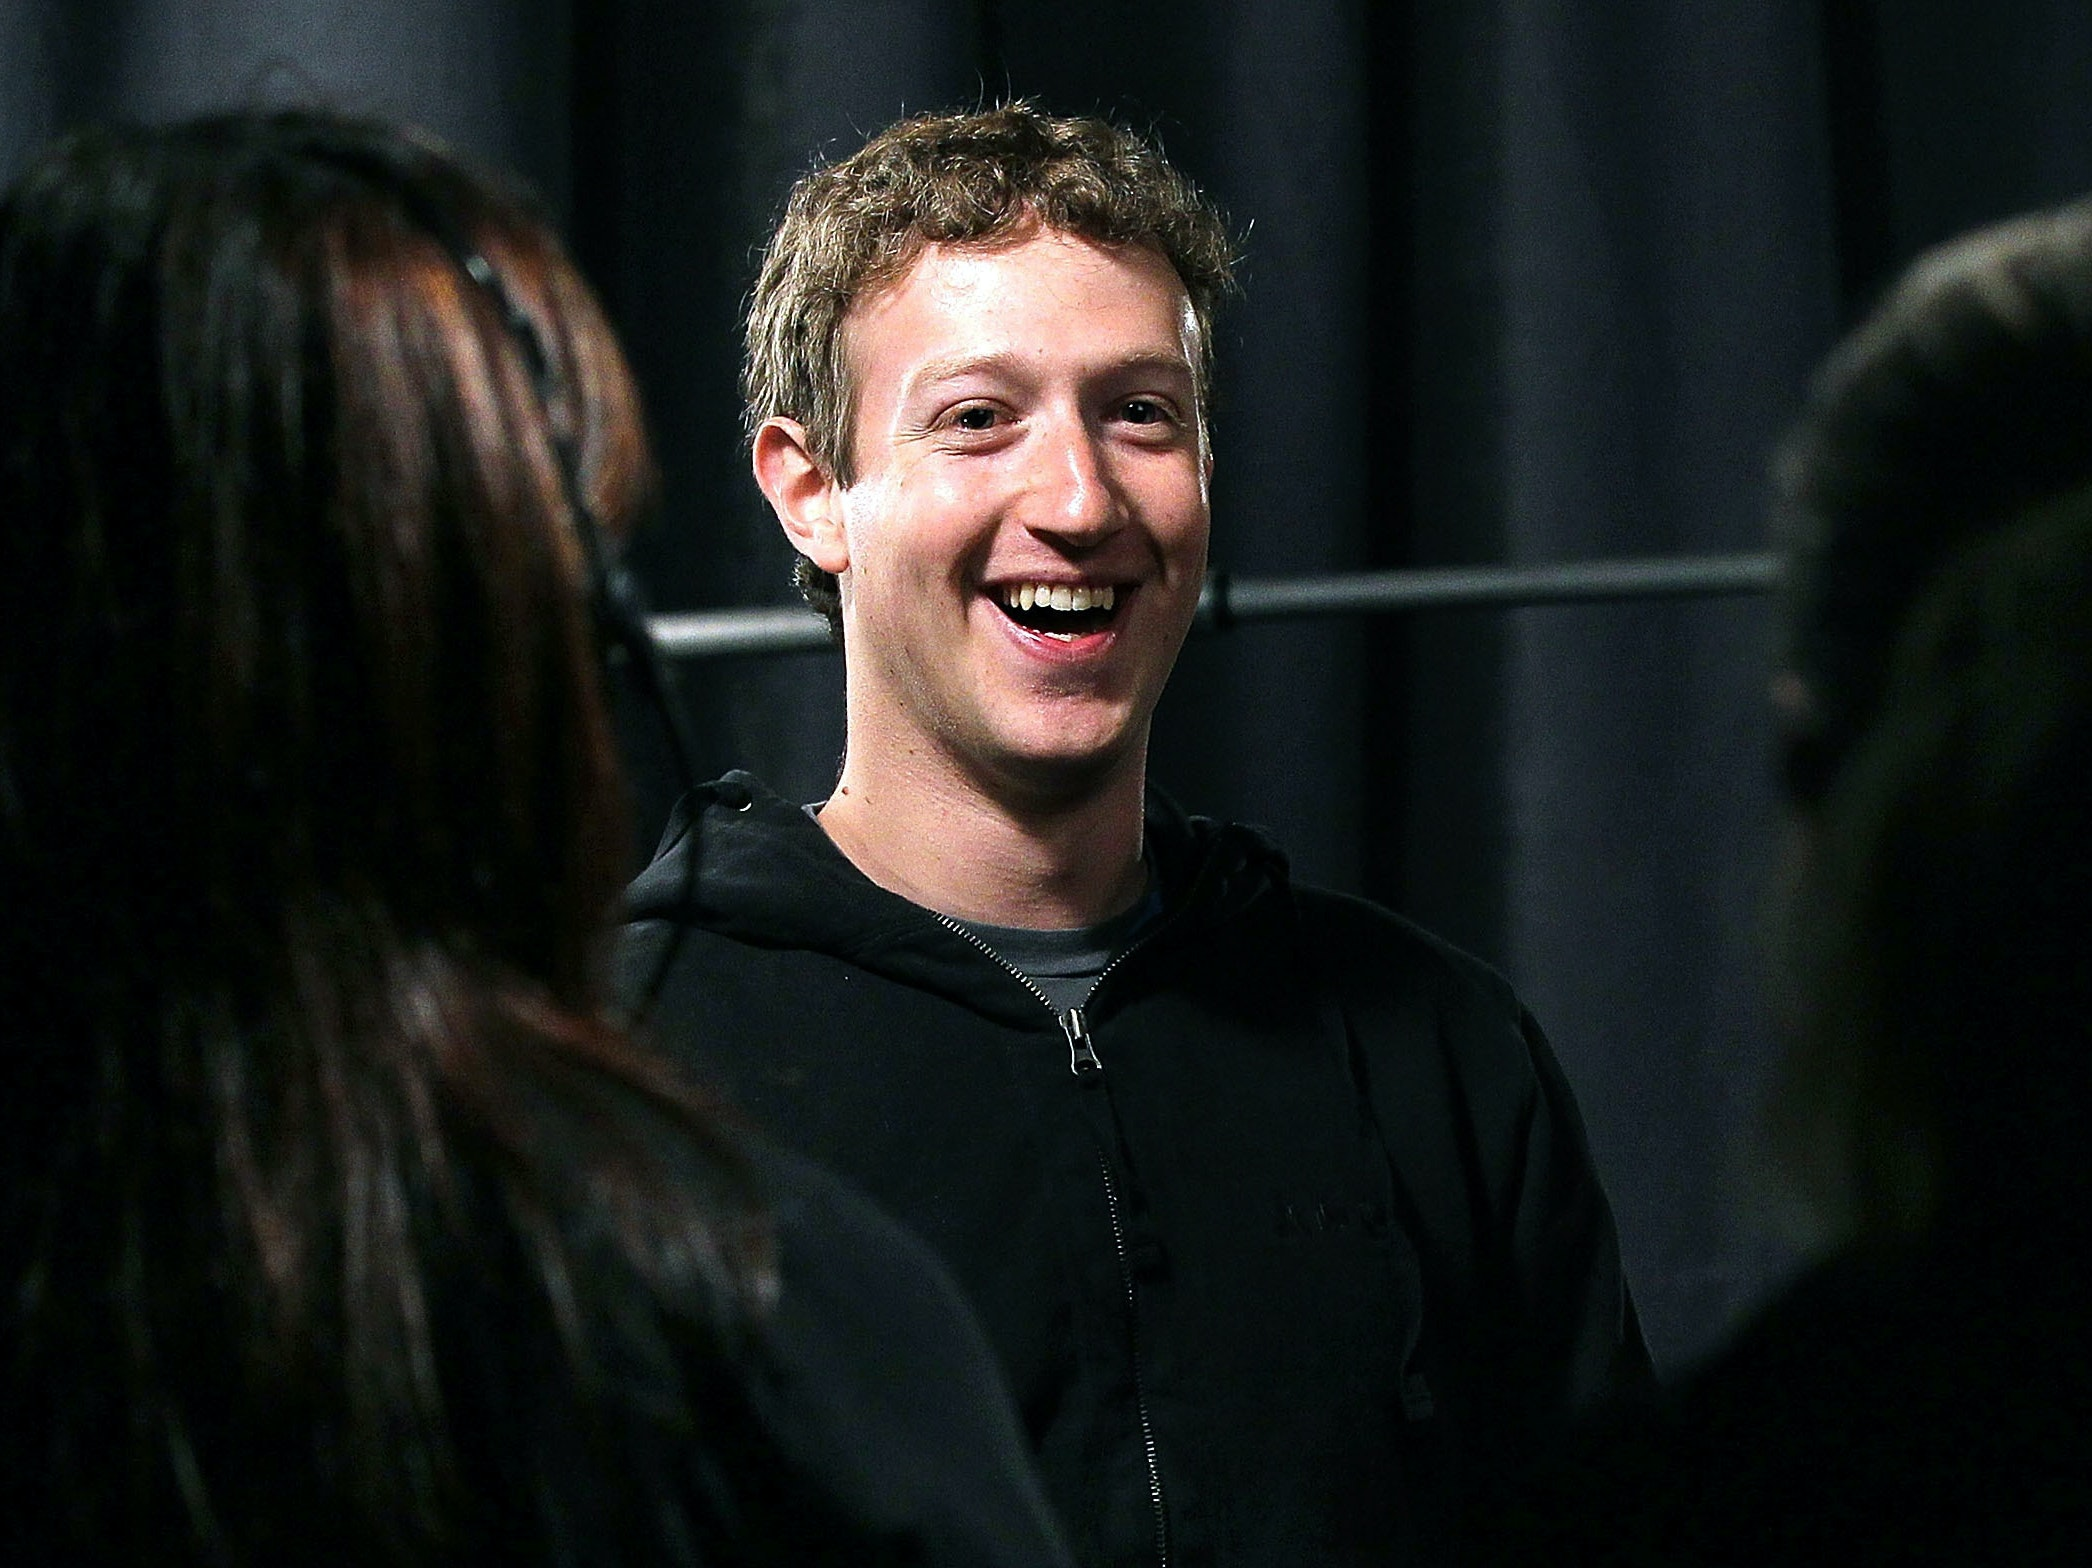 Mark Zuckberg Is Looking a Voice for His A.I. Assistant